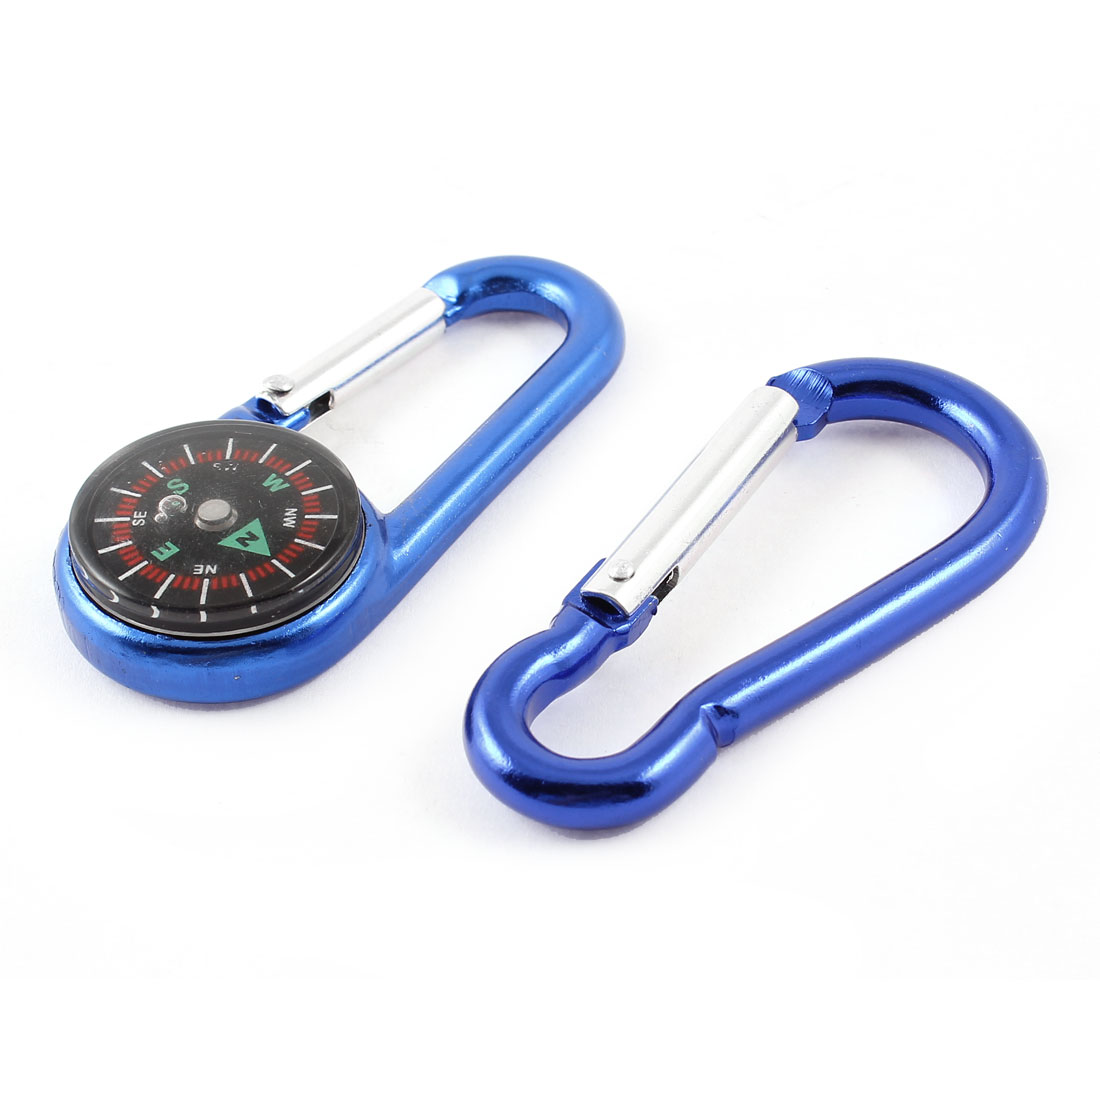 "Hiking Aluminum Alloy Snap Hook Compass Carabiner Blue 2.7"" Long 2 in 1"